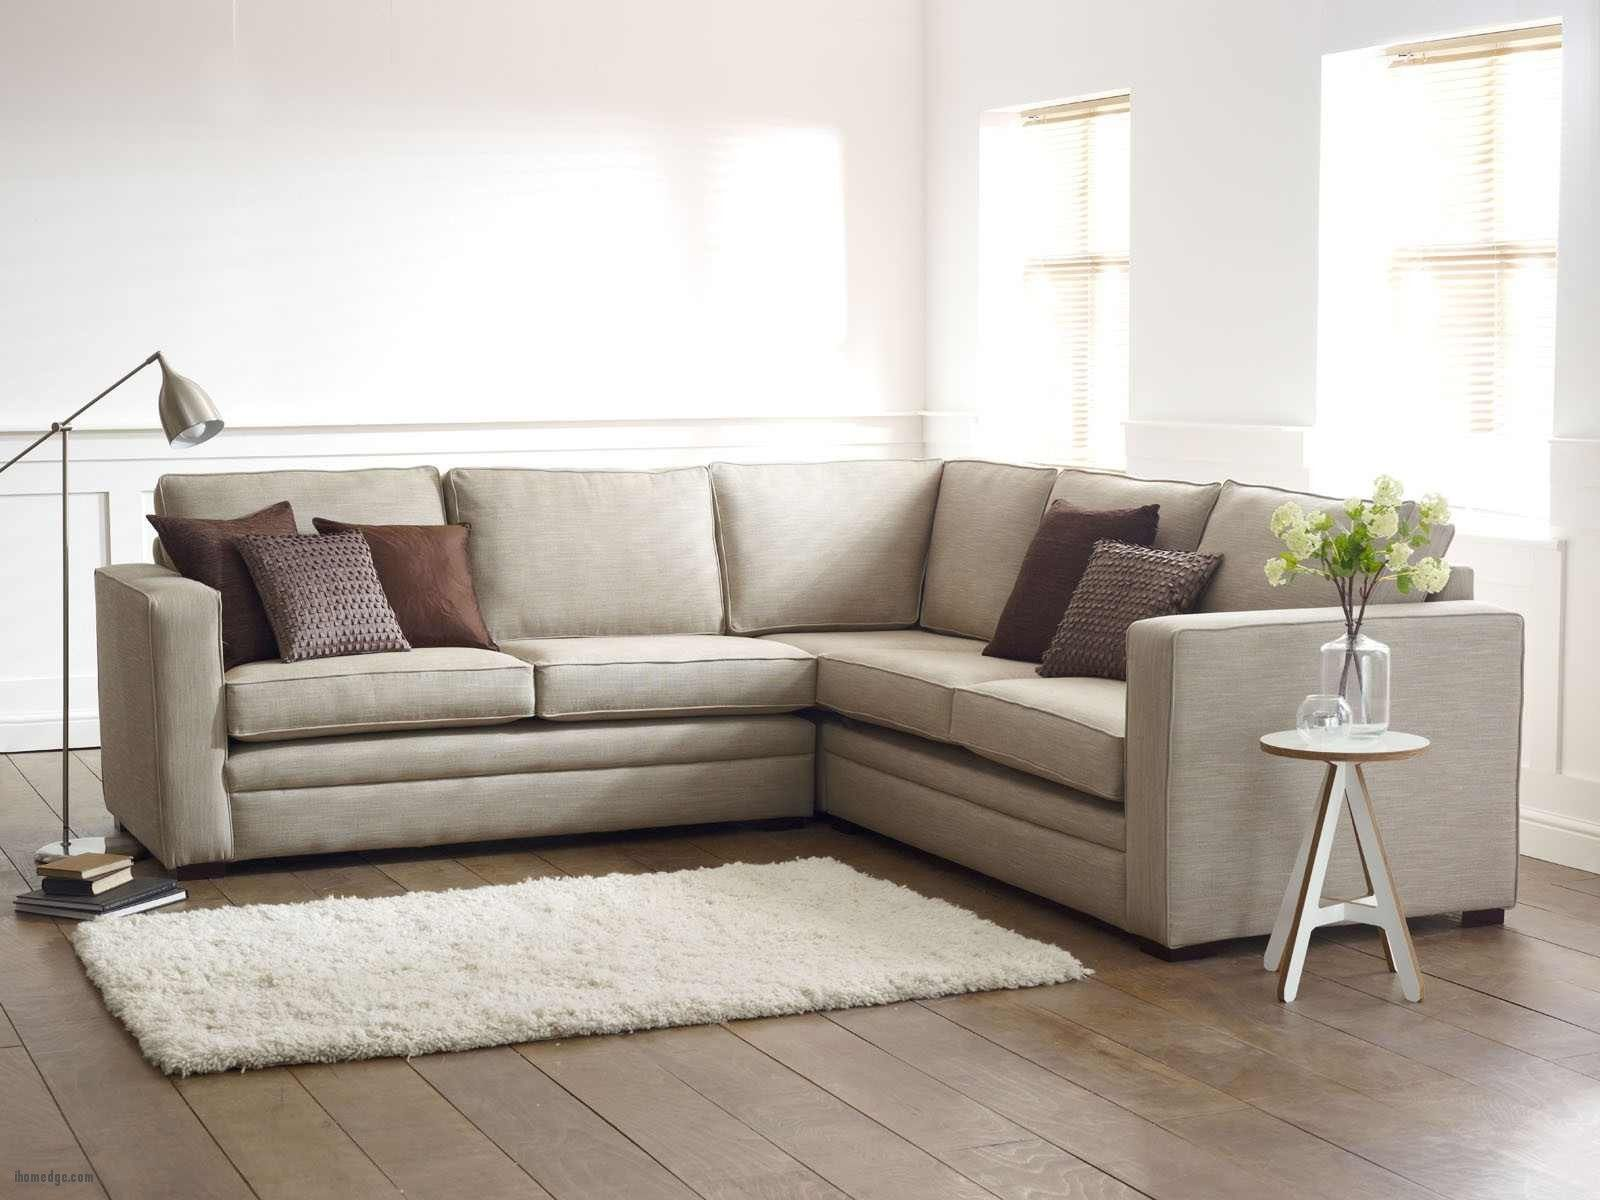 cool Best Furniture Outlet Mn Small L Shaped Sectional Sofa